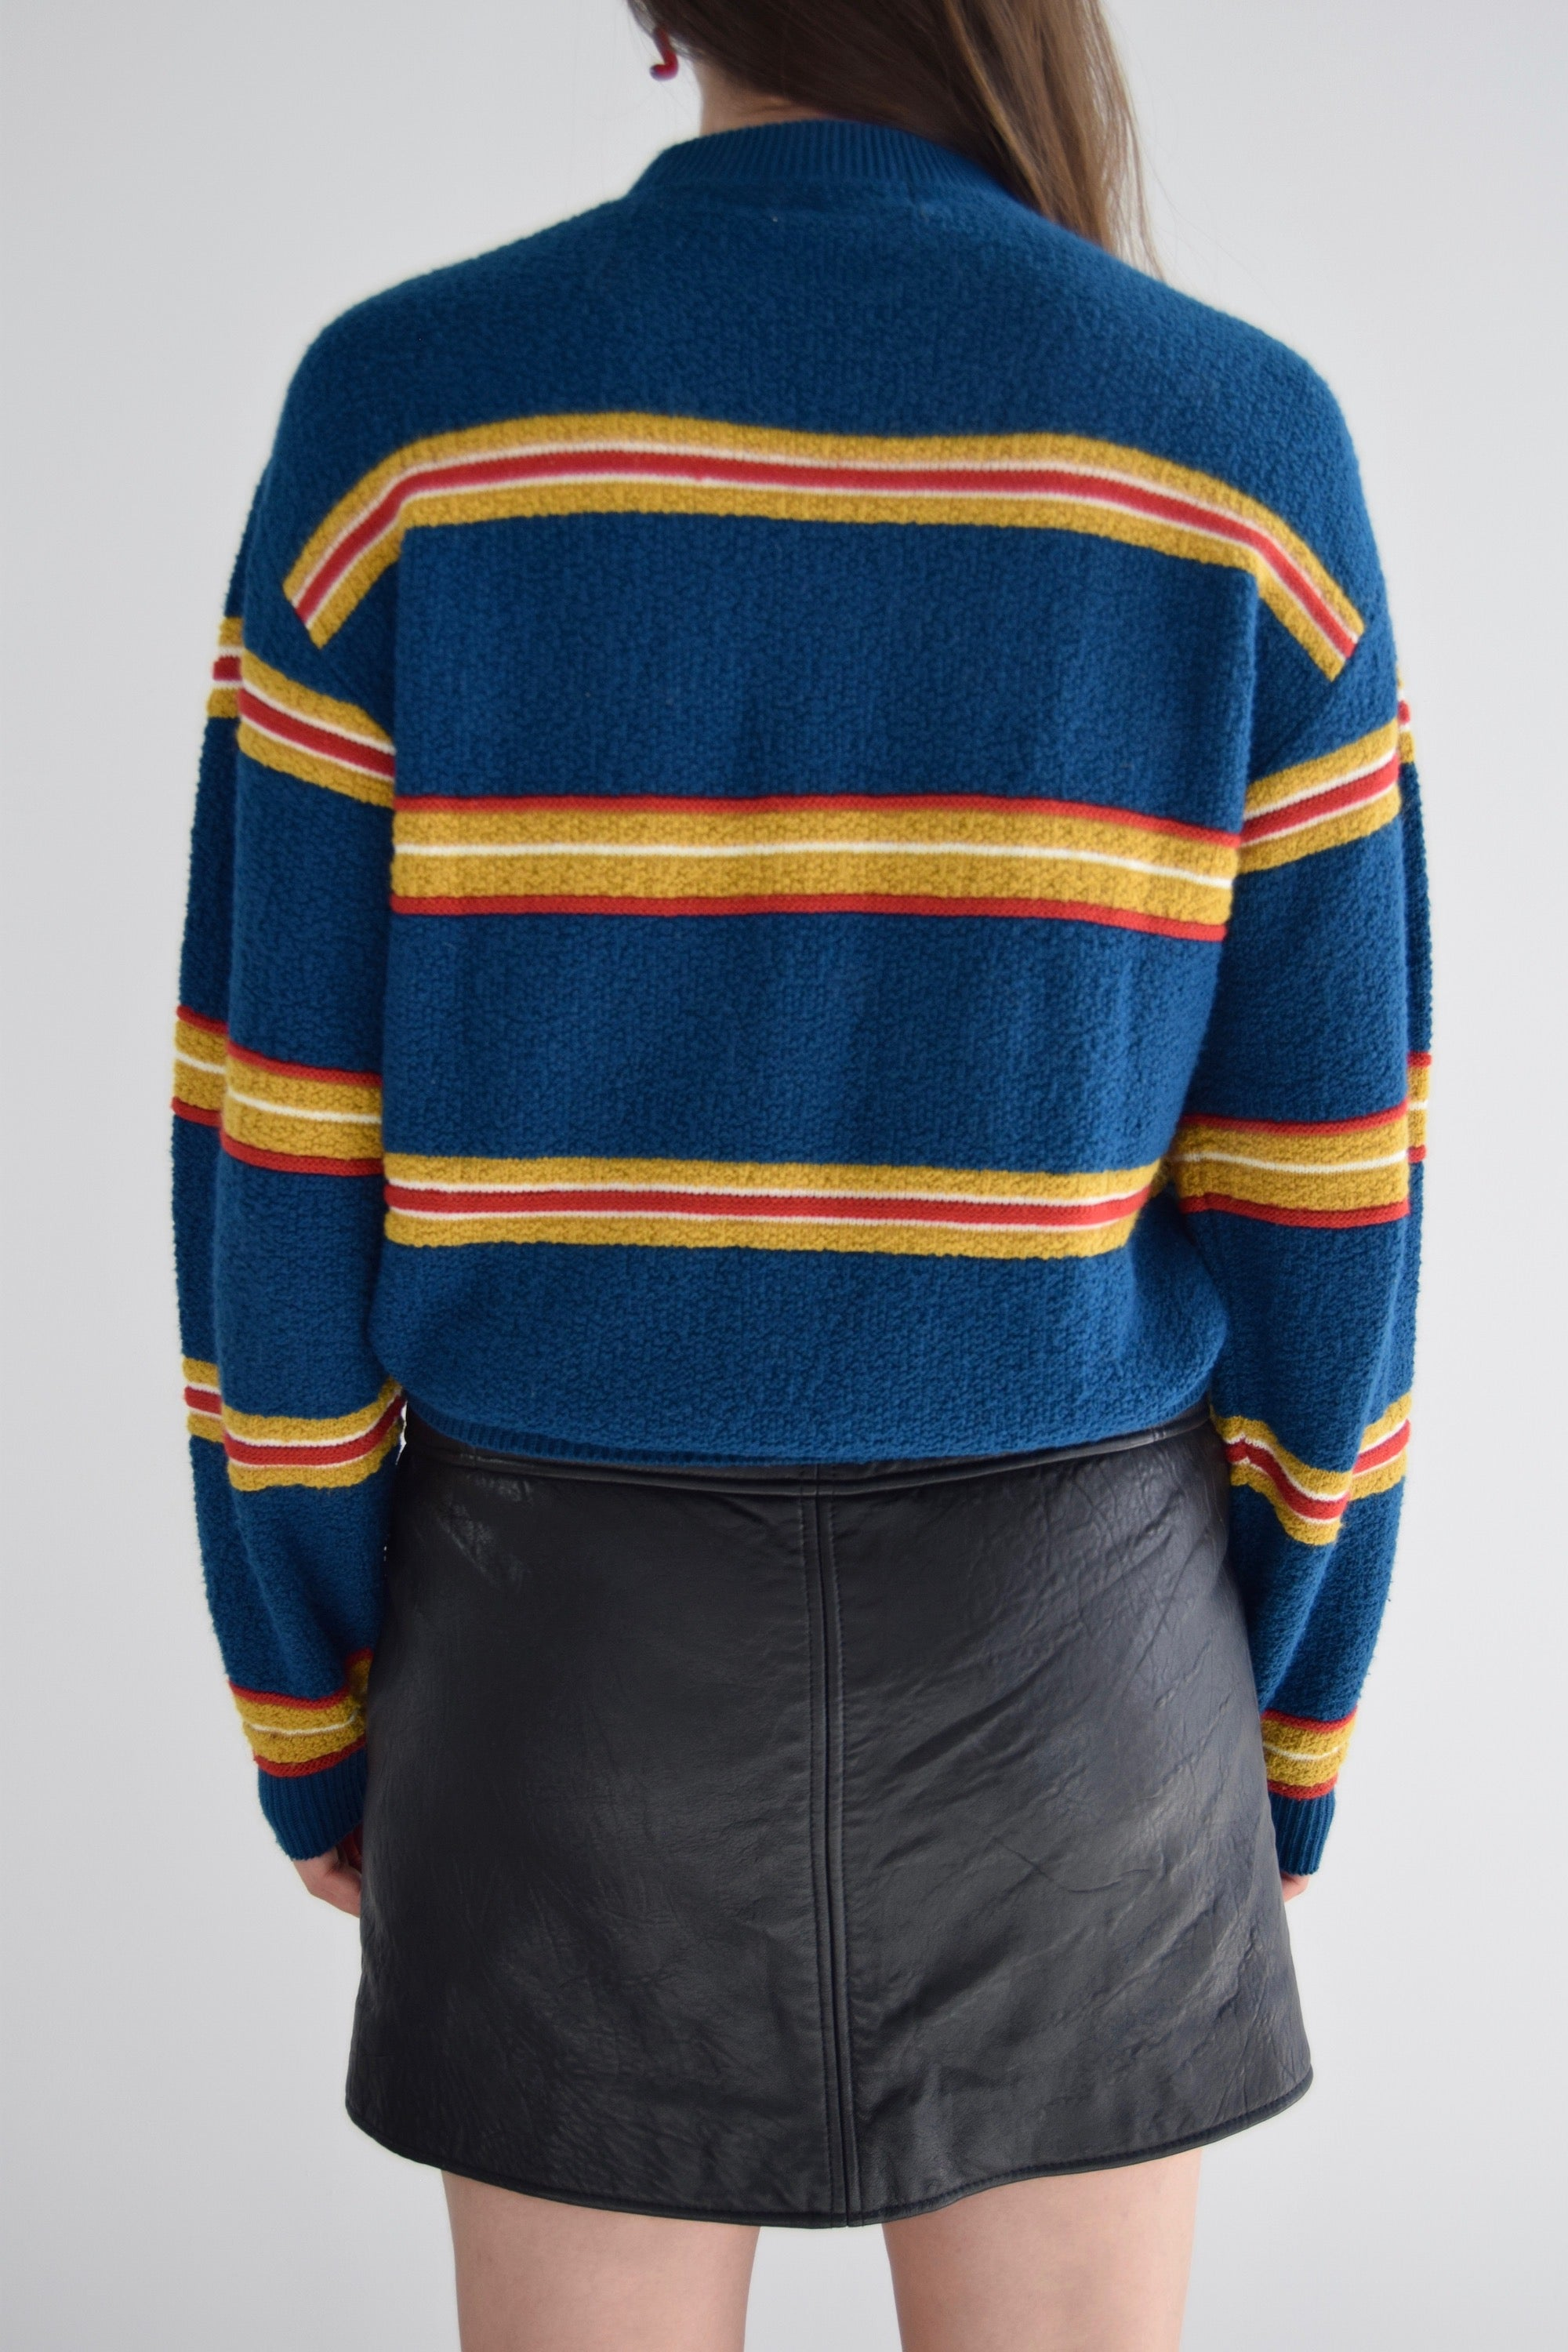 Vintage Primary Colour Horizontal Striped Sweater